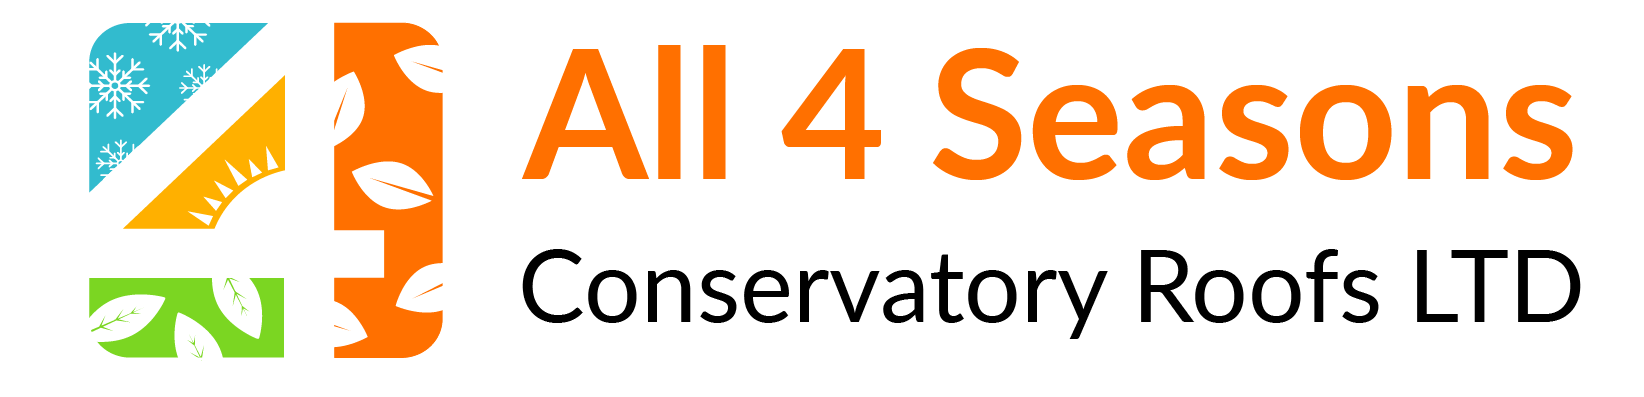 All-4-Seasons-Logo-ltd-e1607441229757